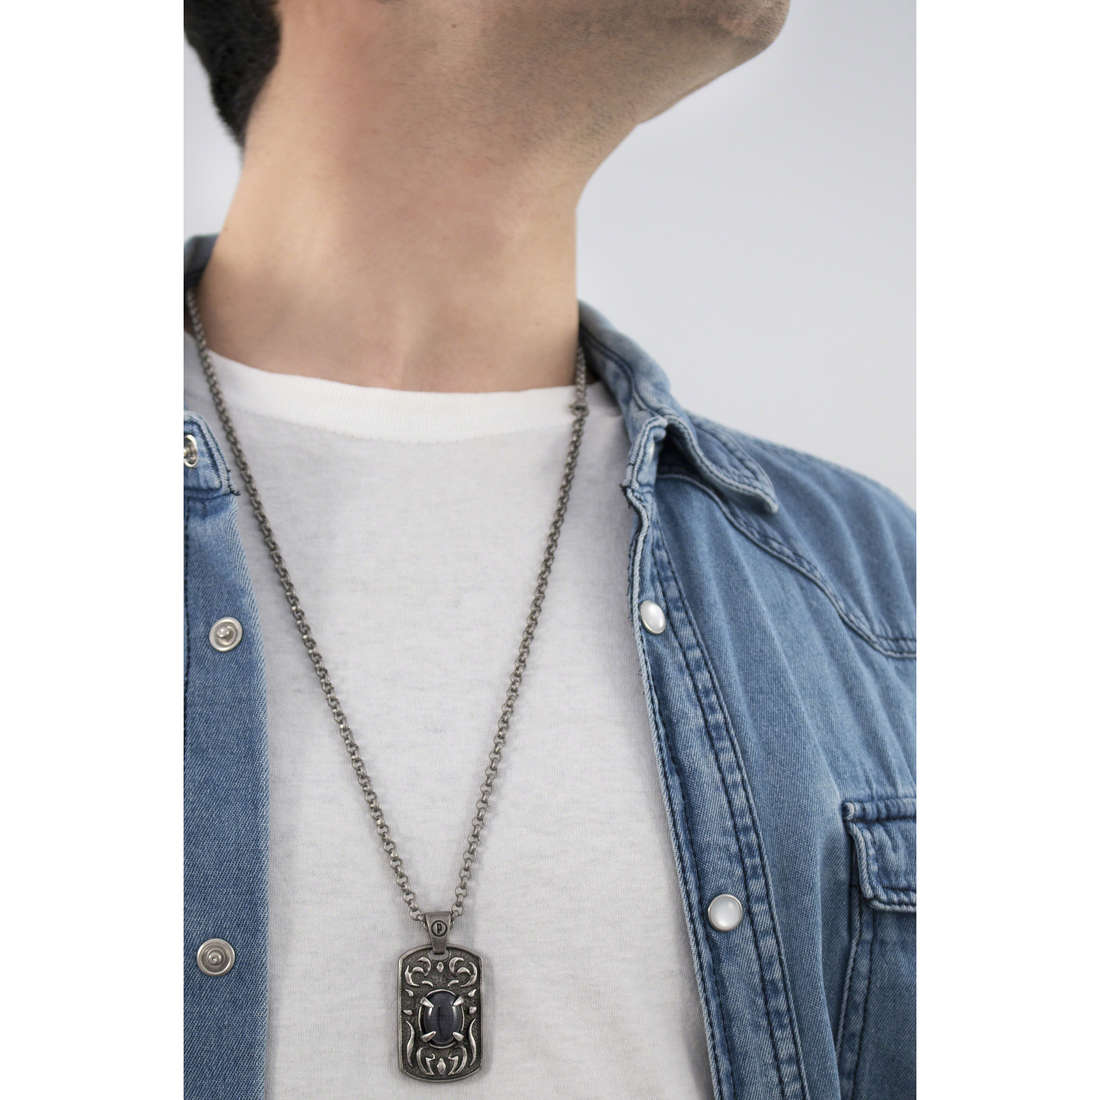 Police necklaces Spectre man S14AFX01P indosso